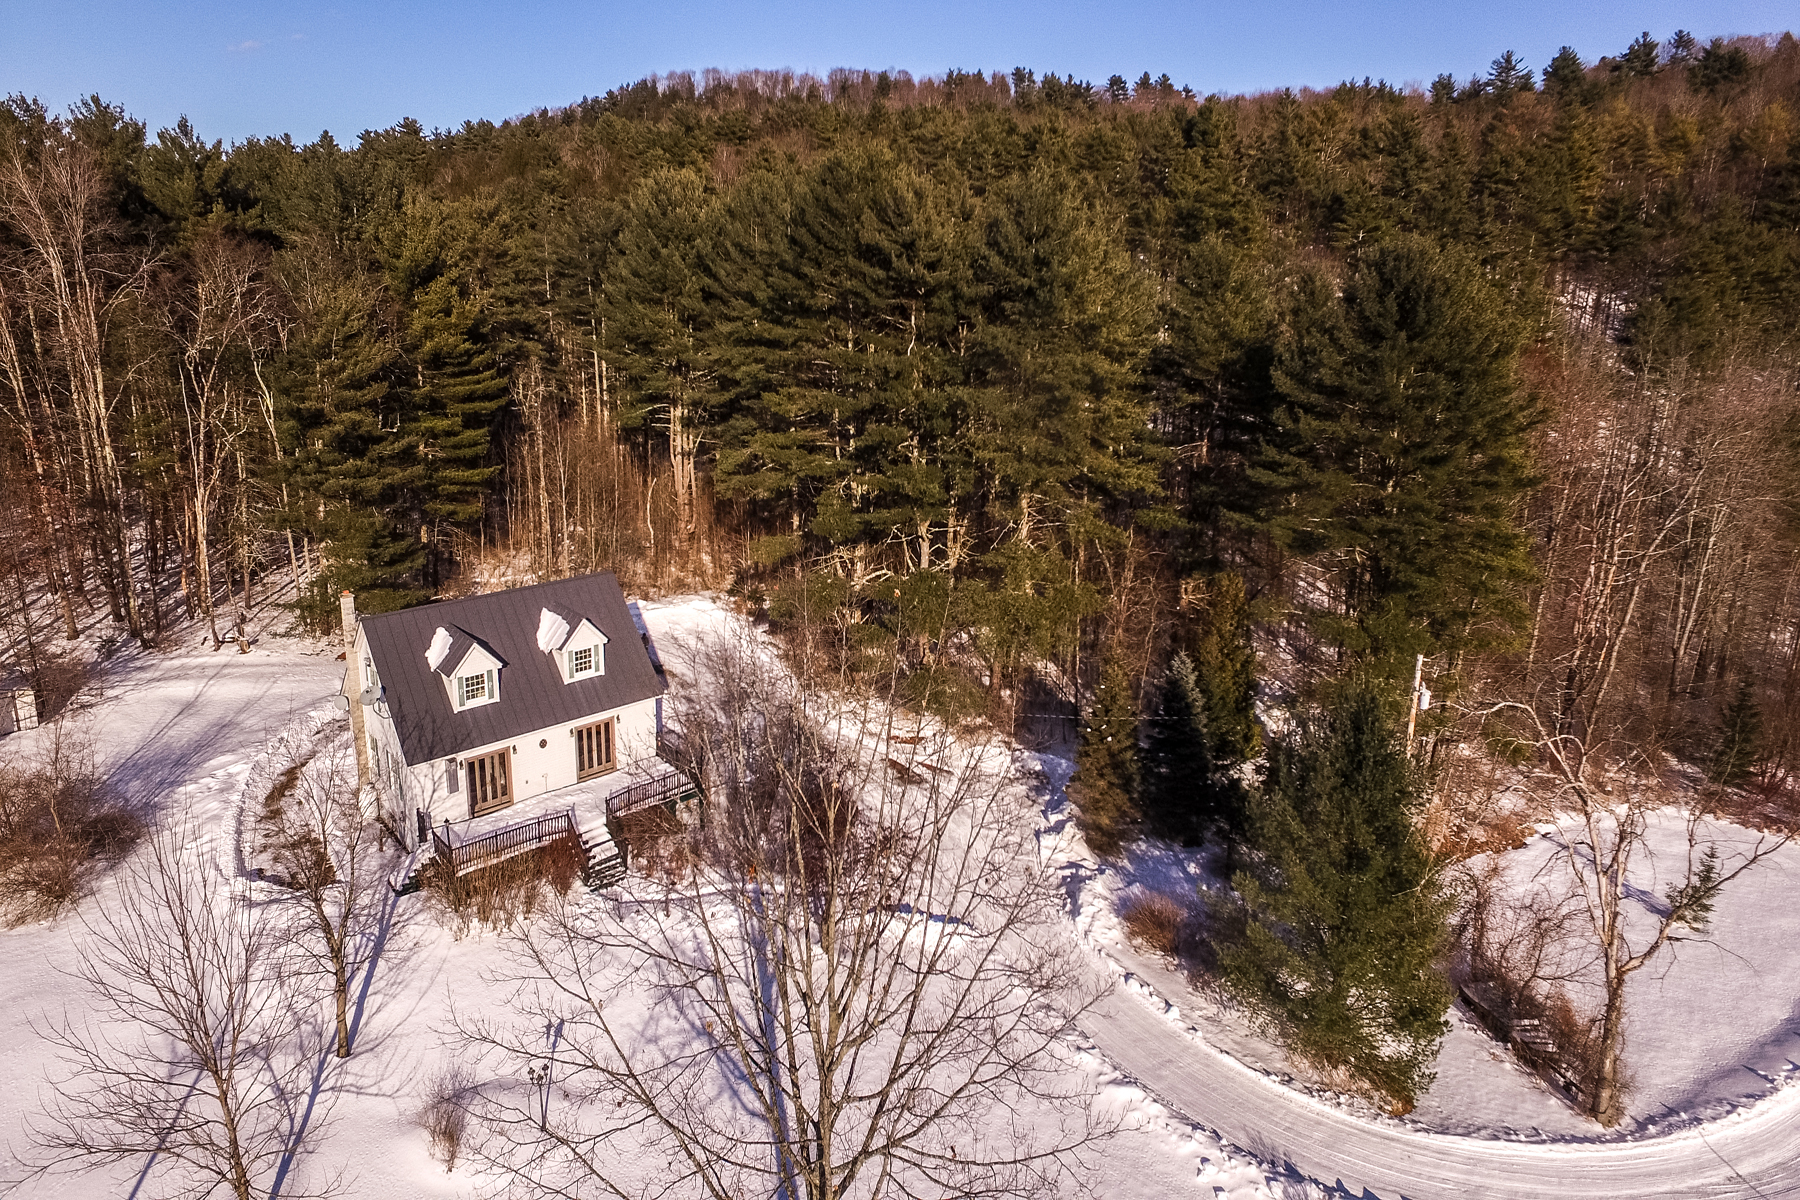 Single Family Homes for Sale at 8.3 Acres, Lake Bomoseen 292 FT Frontage 4541 Route 30 N. Castleton, Vermont 05735 United States